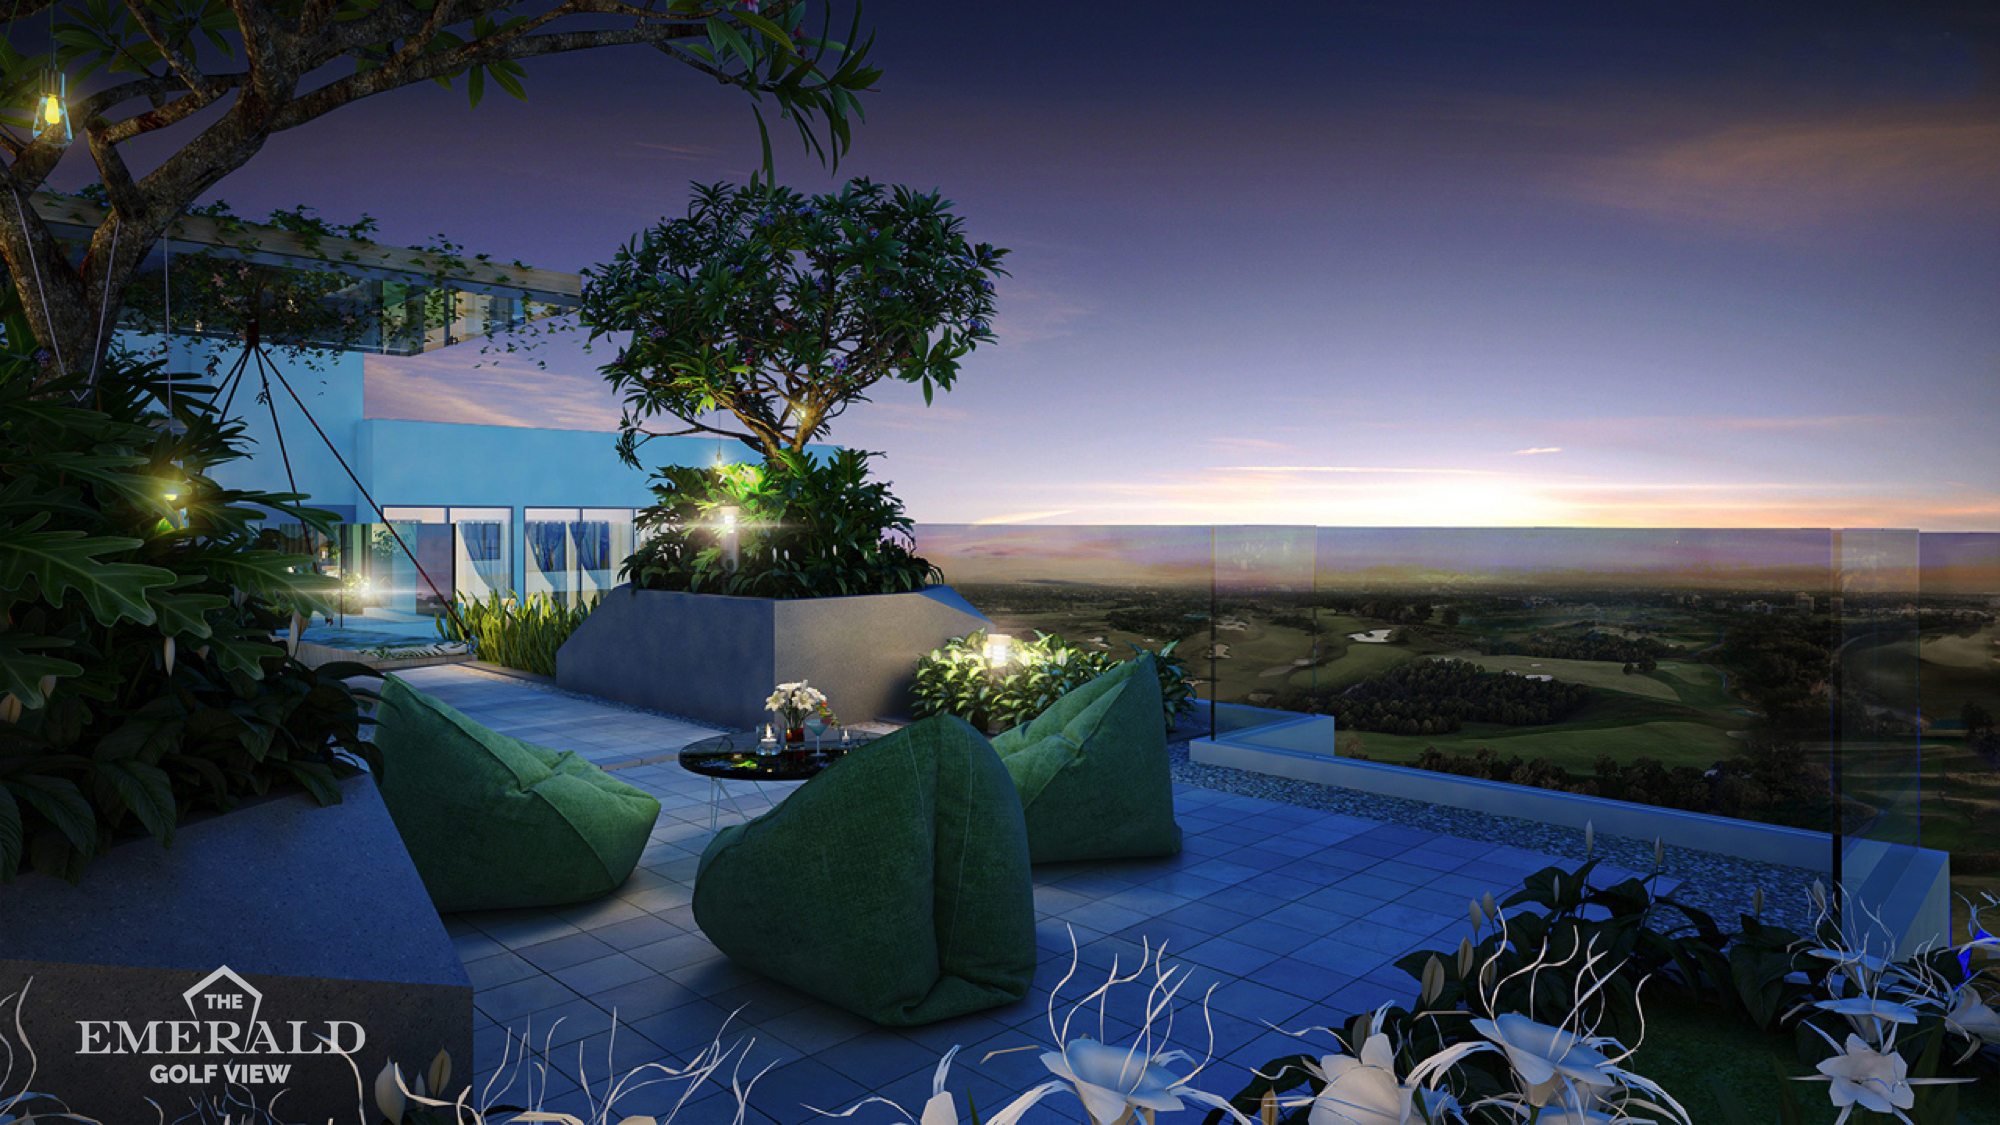 PAY 30% IN ADVANCE TO OWN THE EMERALD GOLF VIEW APARTMENT